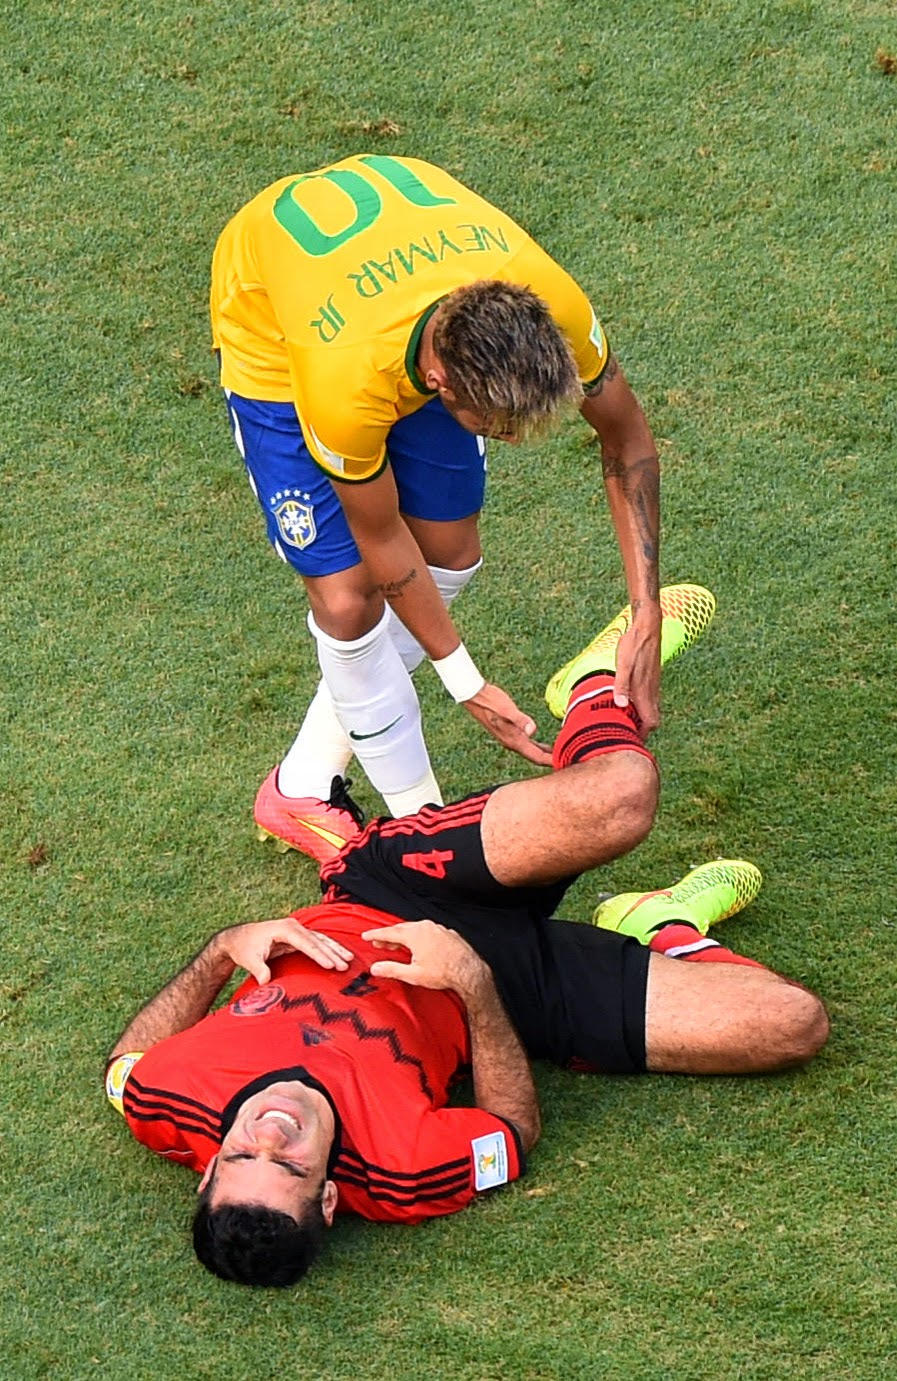 Brazil's Neymar, left, attends Mexico's Rafael Marquez after a foul during the group A World Cup soccer match between Brazil and Mexico at the Arena Castelao in Fortaleza, Brazil, Tuesday, June 17, 2014.